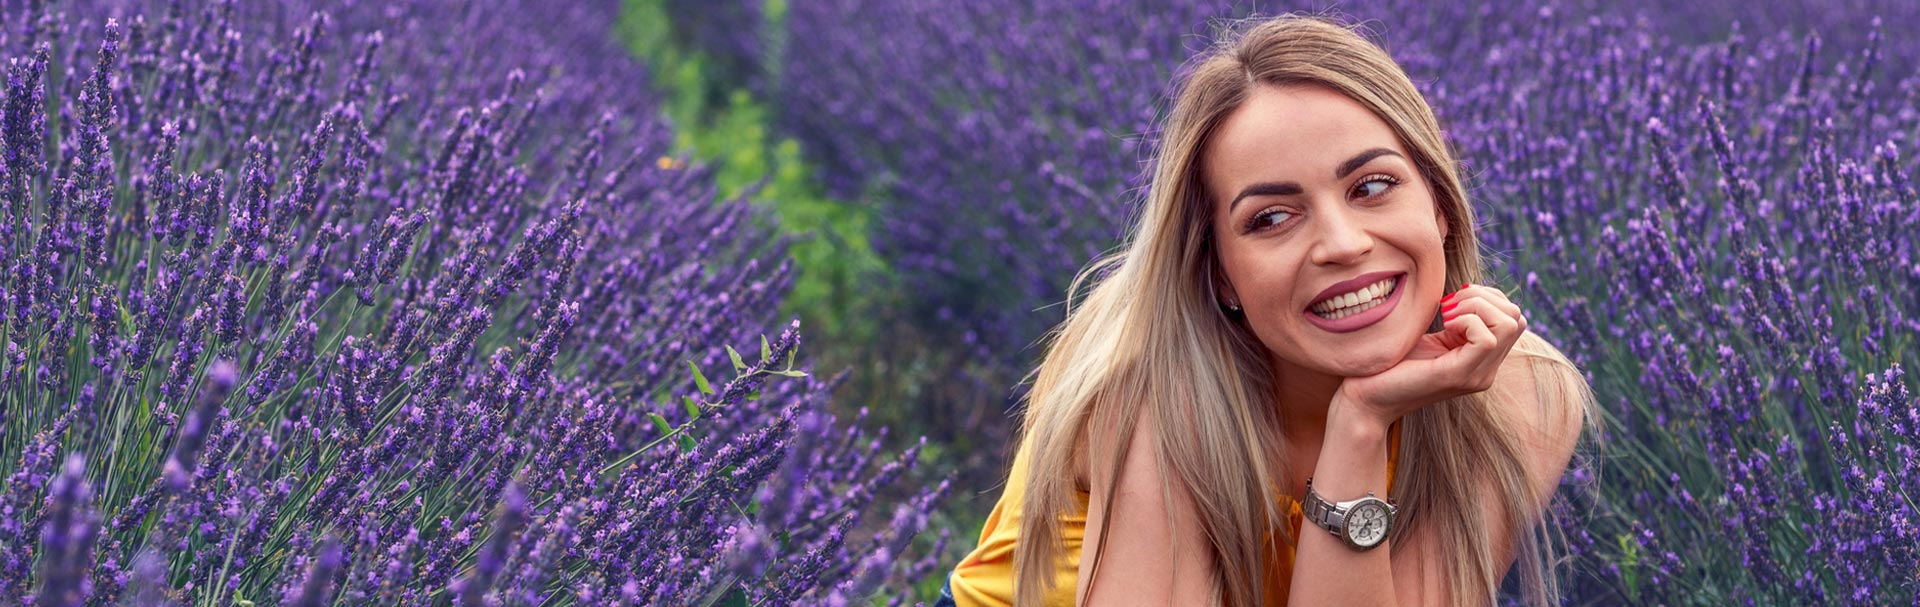 Beautiful young woman on the lavender field